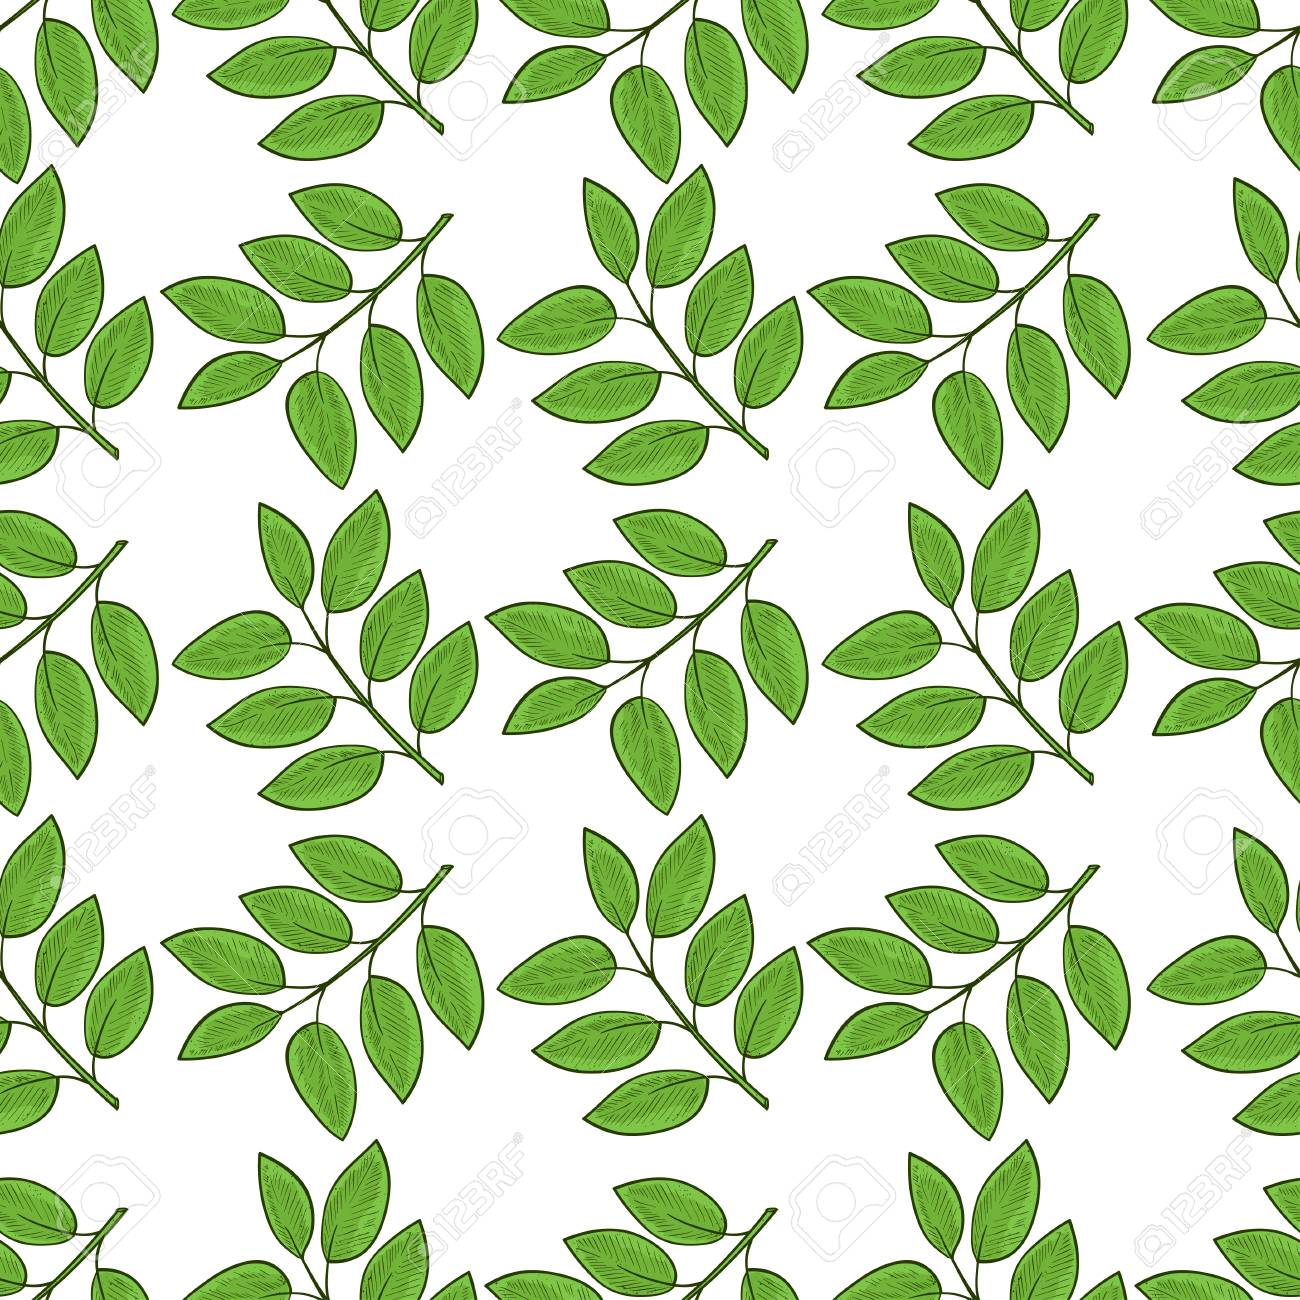 Green Leaves Branch White Background Wallpaper Texture Seamless